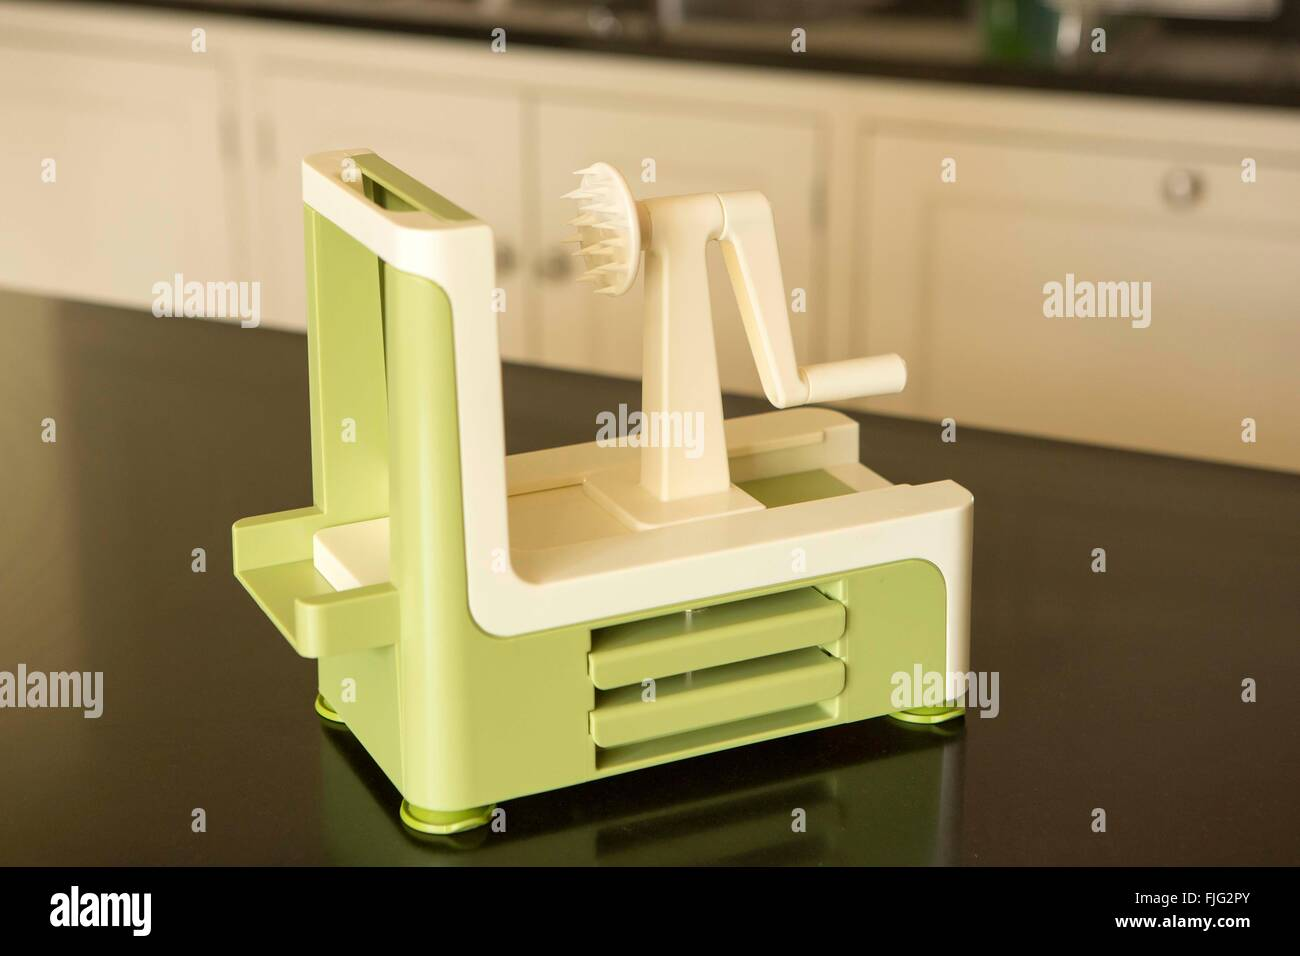 A kitchen gadget that is used to cut raw vegetables into long spirals resembling spaghetti, also known as a spiralizer - Stock Image